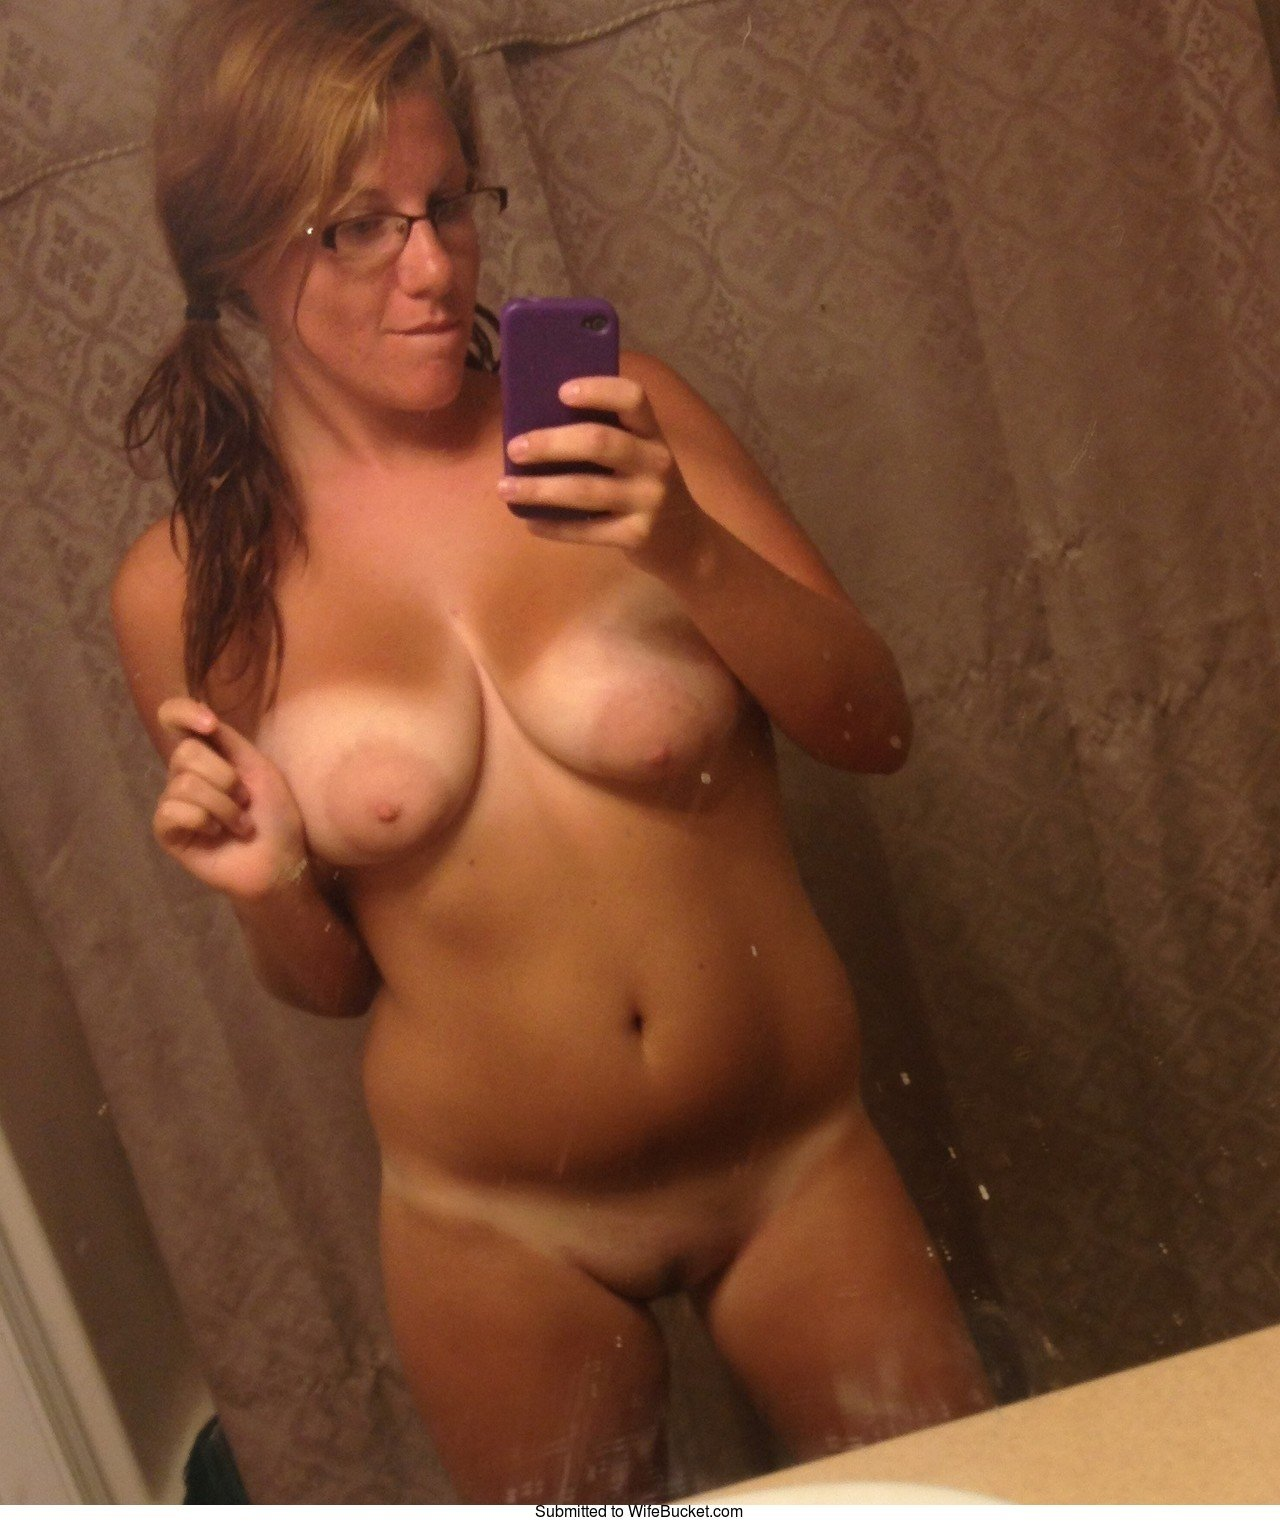 monster creampie pics there